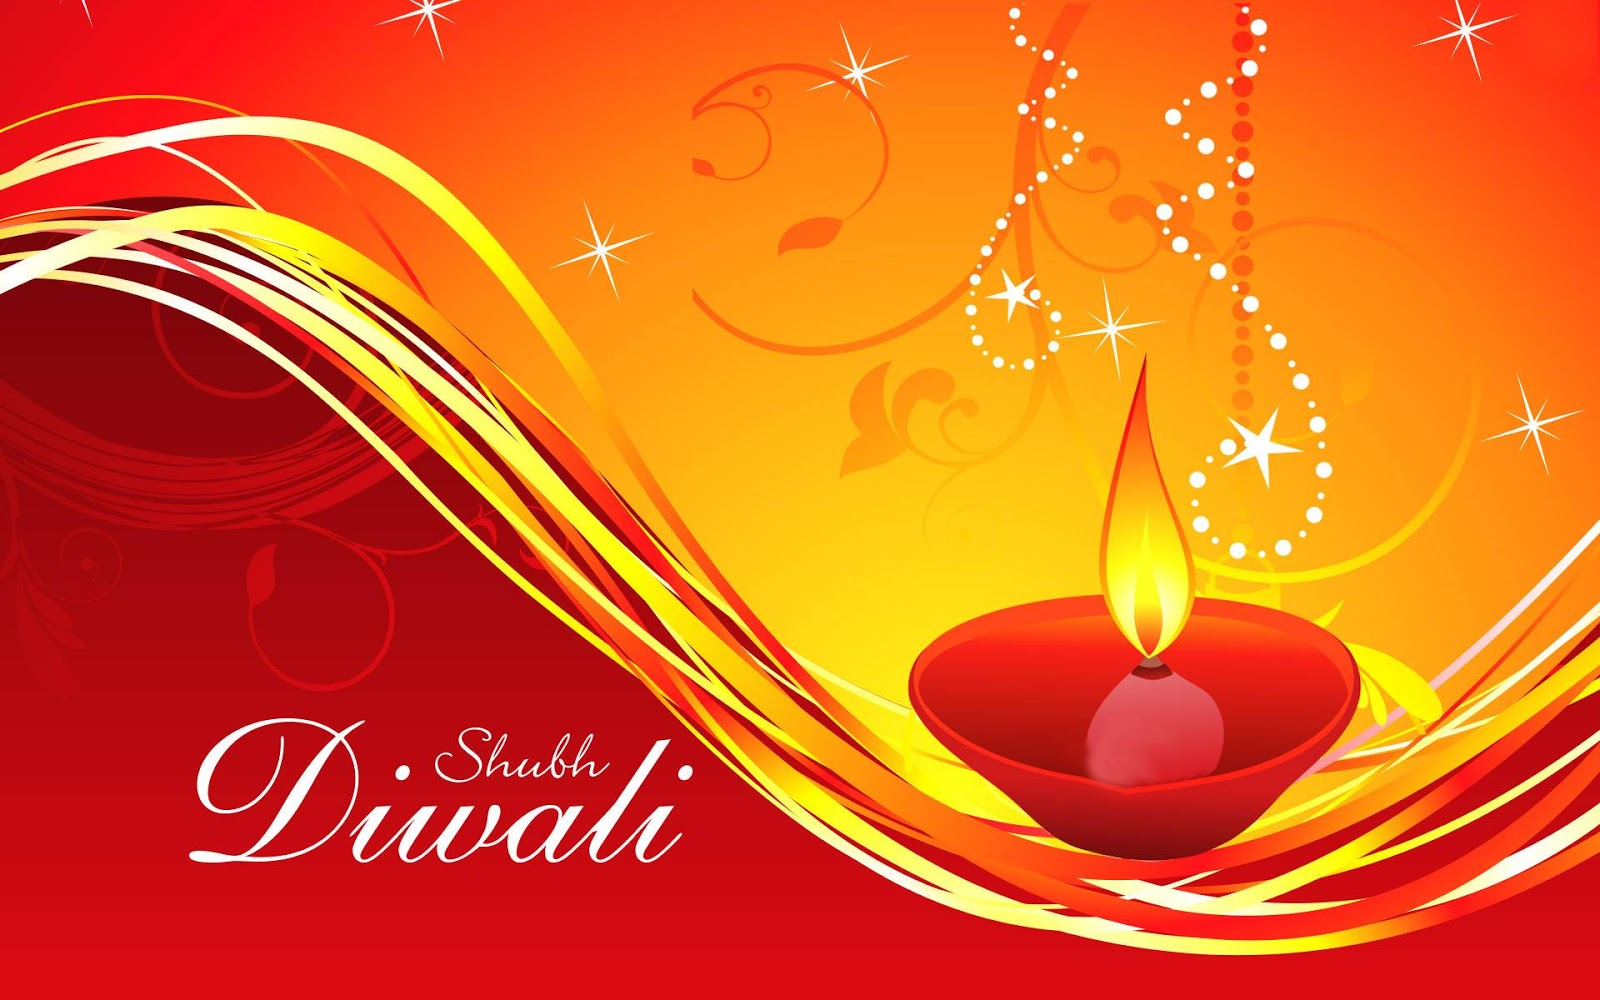 Happy Diwali 2018 Images Wishes Messages Quotes